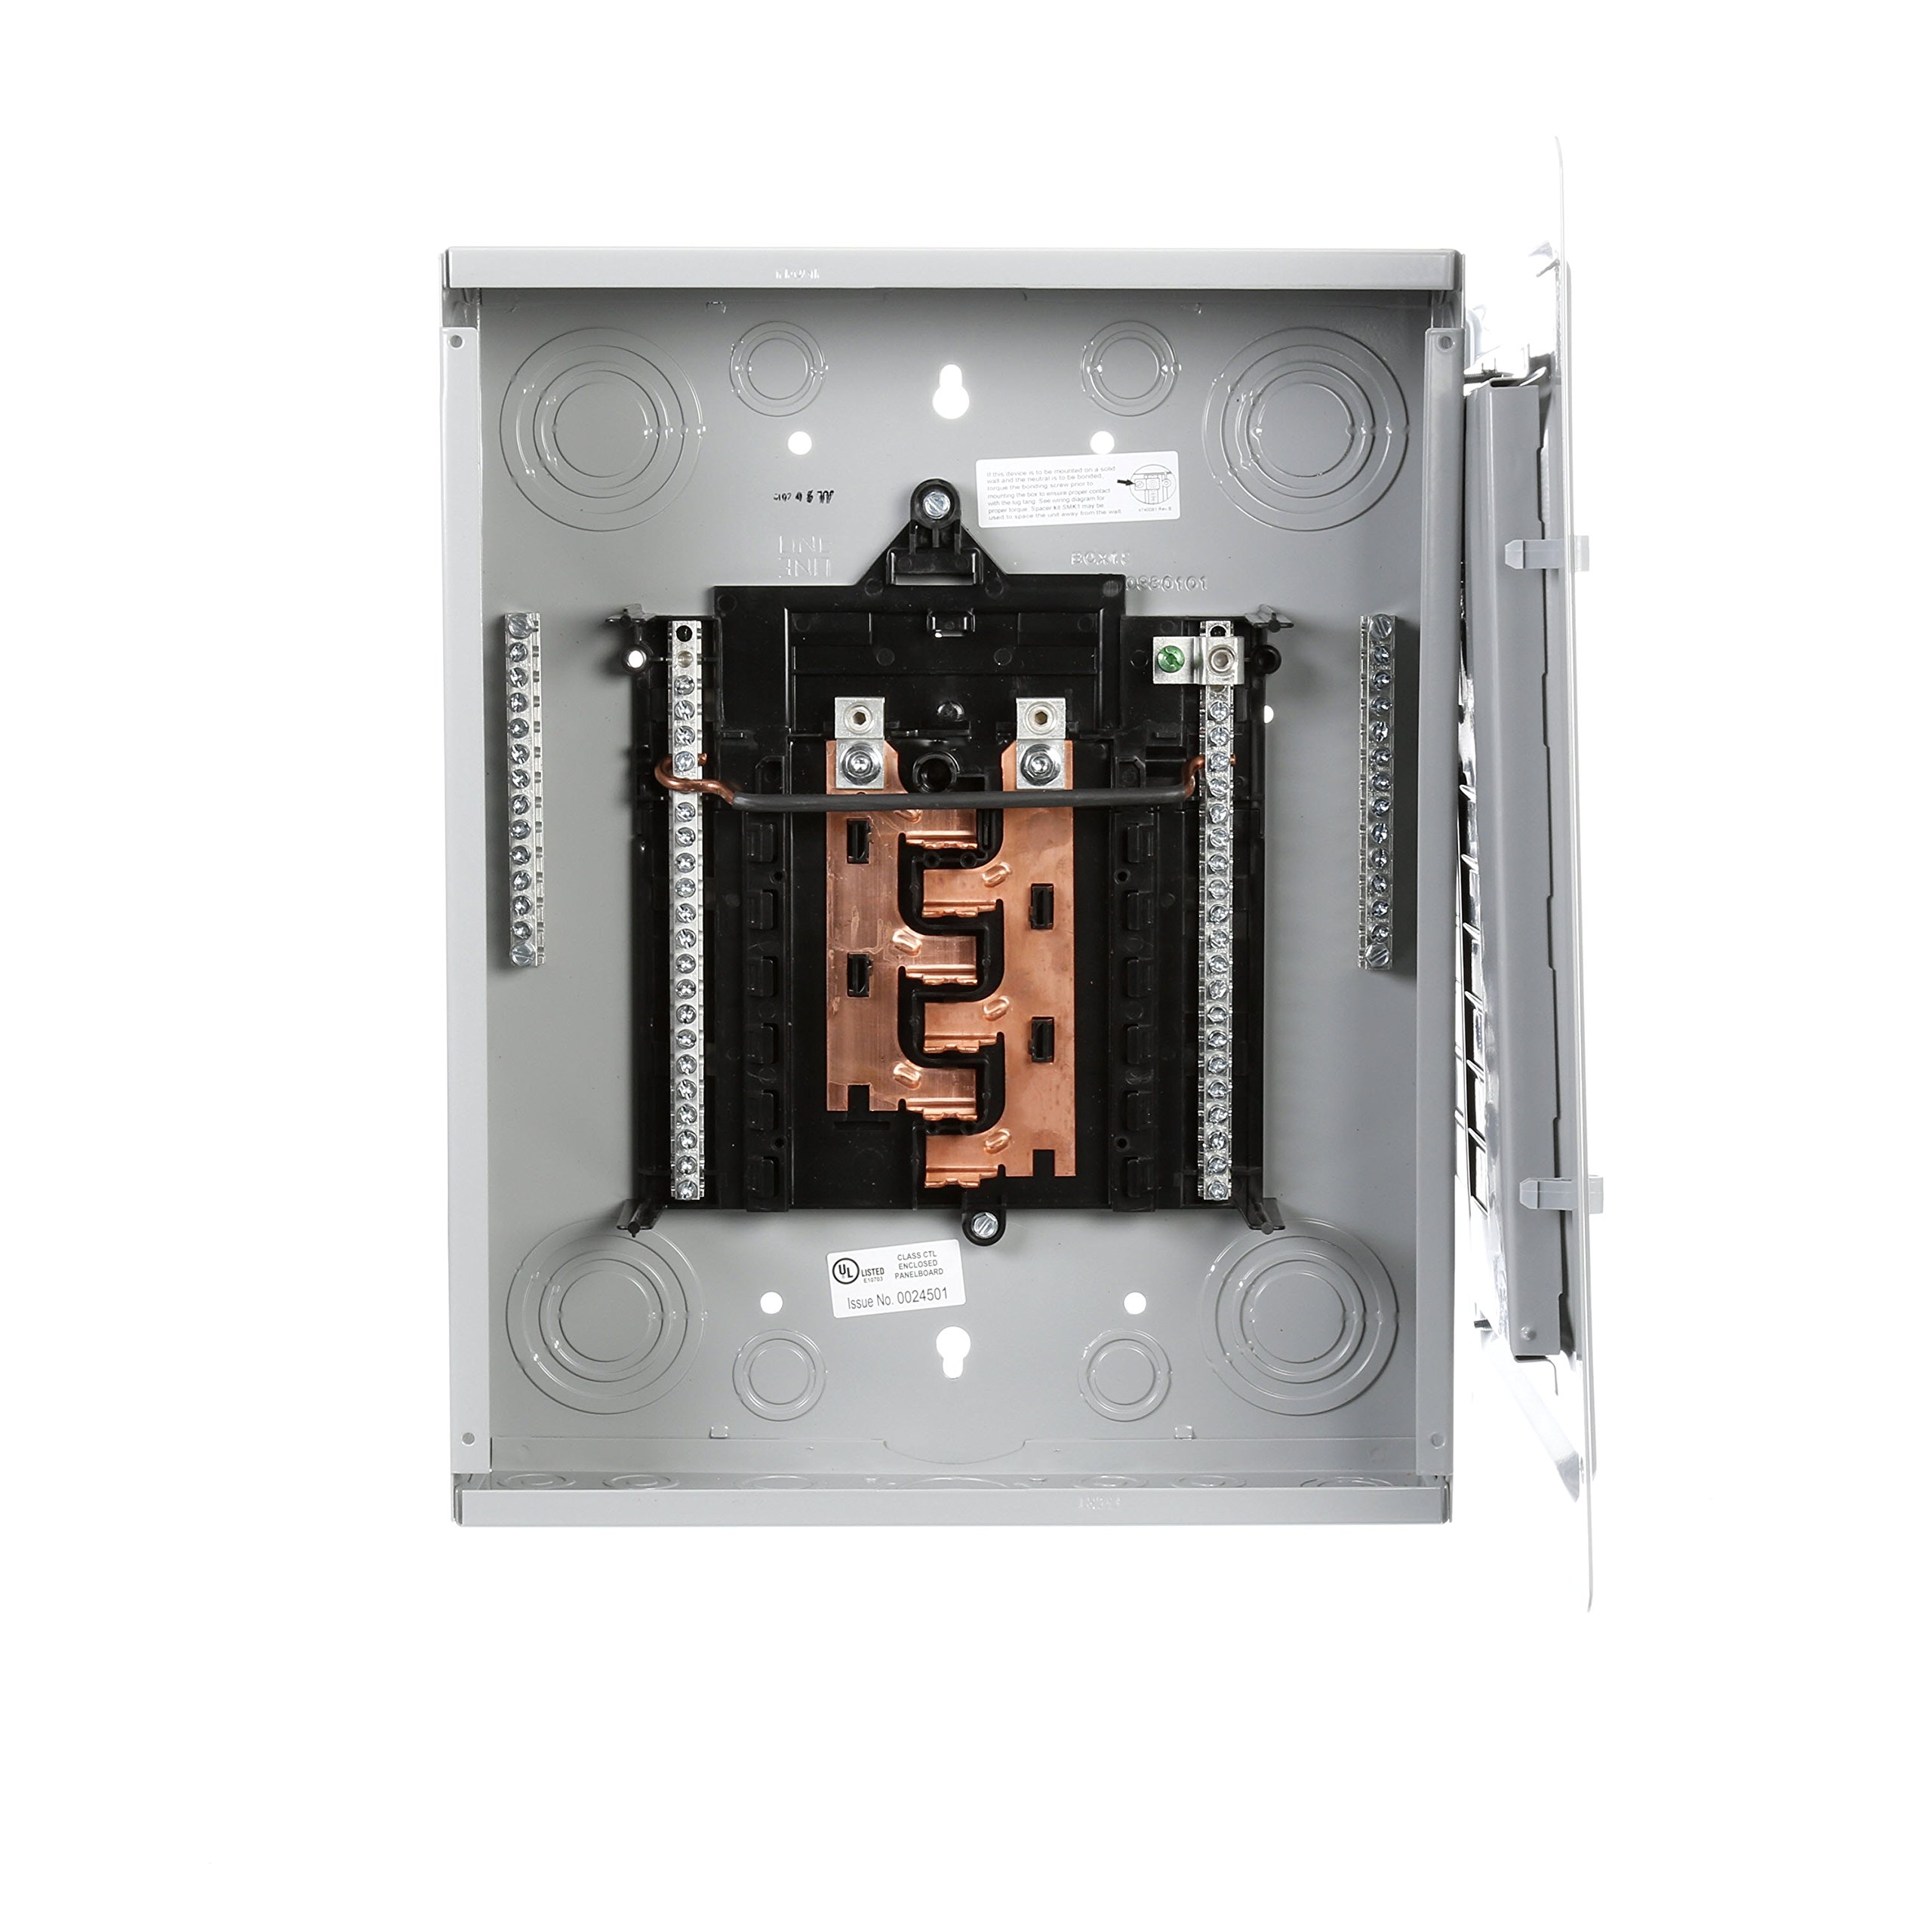 Best Rated In Circuit Breaker Panels Helpful Customer Reviews Home Board Square Frame P1224l1125cu 125 Amp 12 Space 24 Main Lug Load Center Product Image